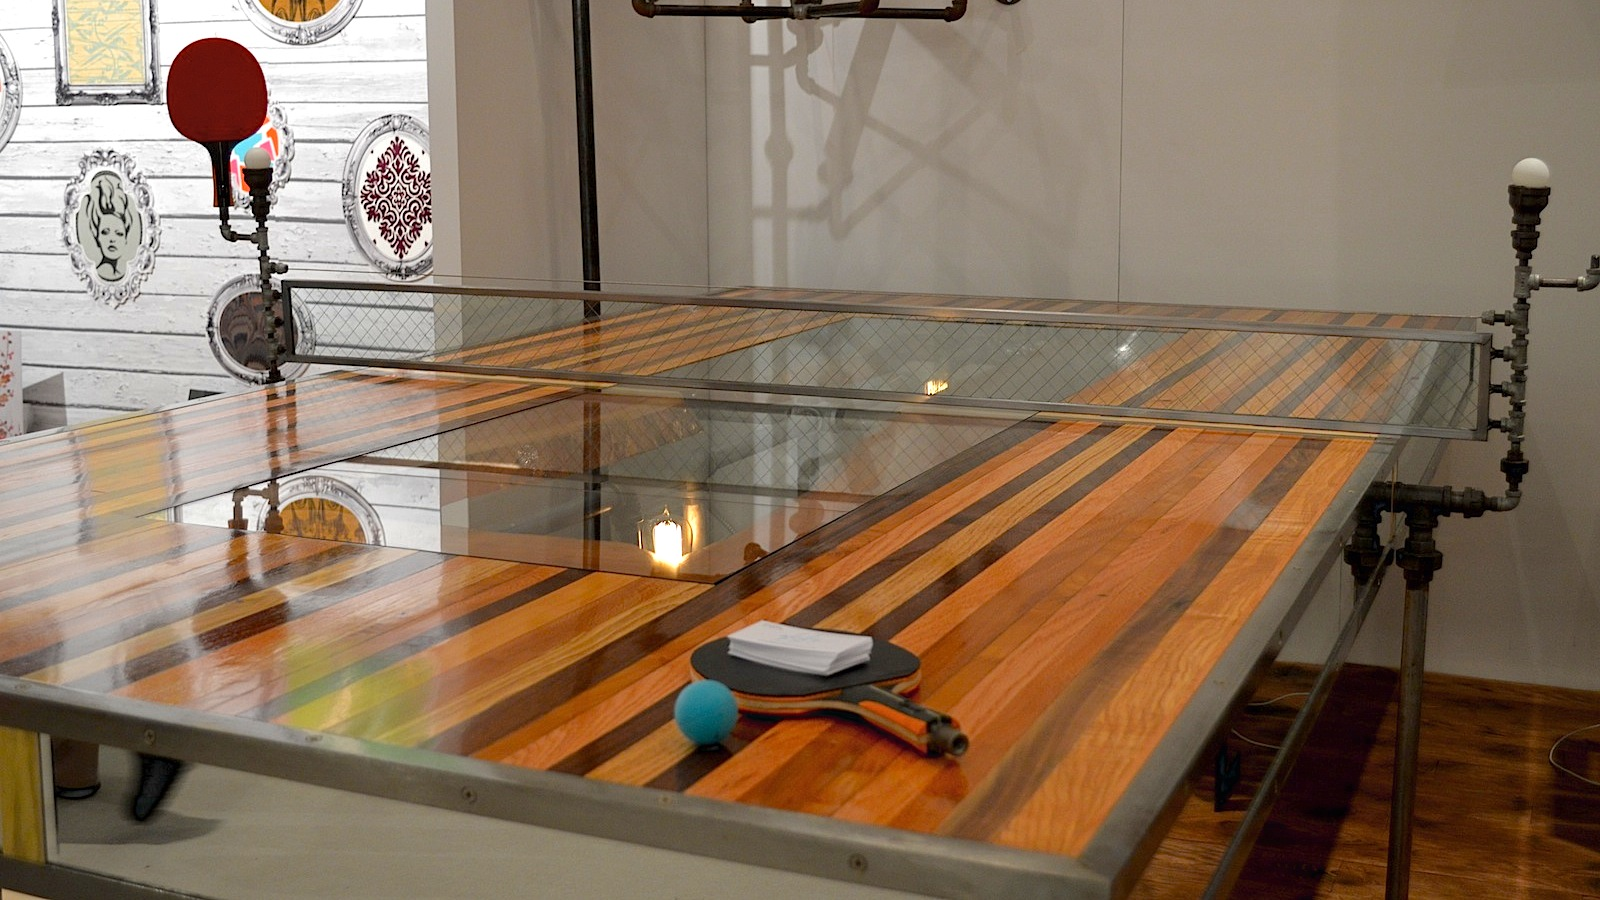 Diy Pool Table Dining Top Gizmodo Australia The Gadget Guide Technology And